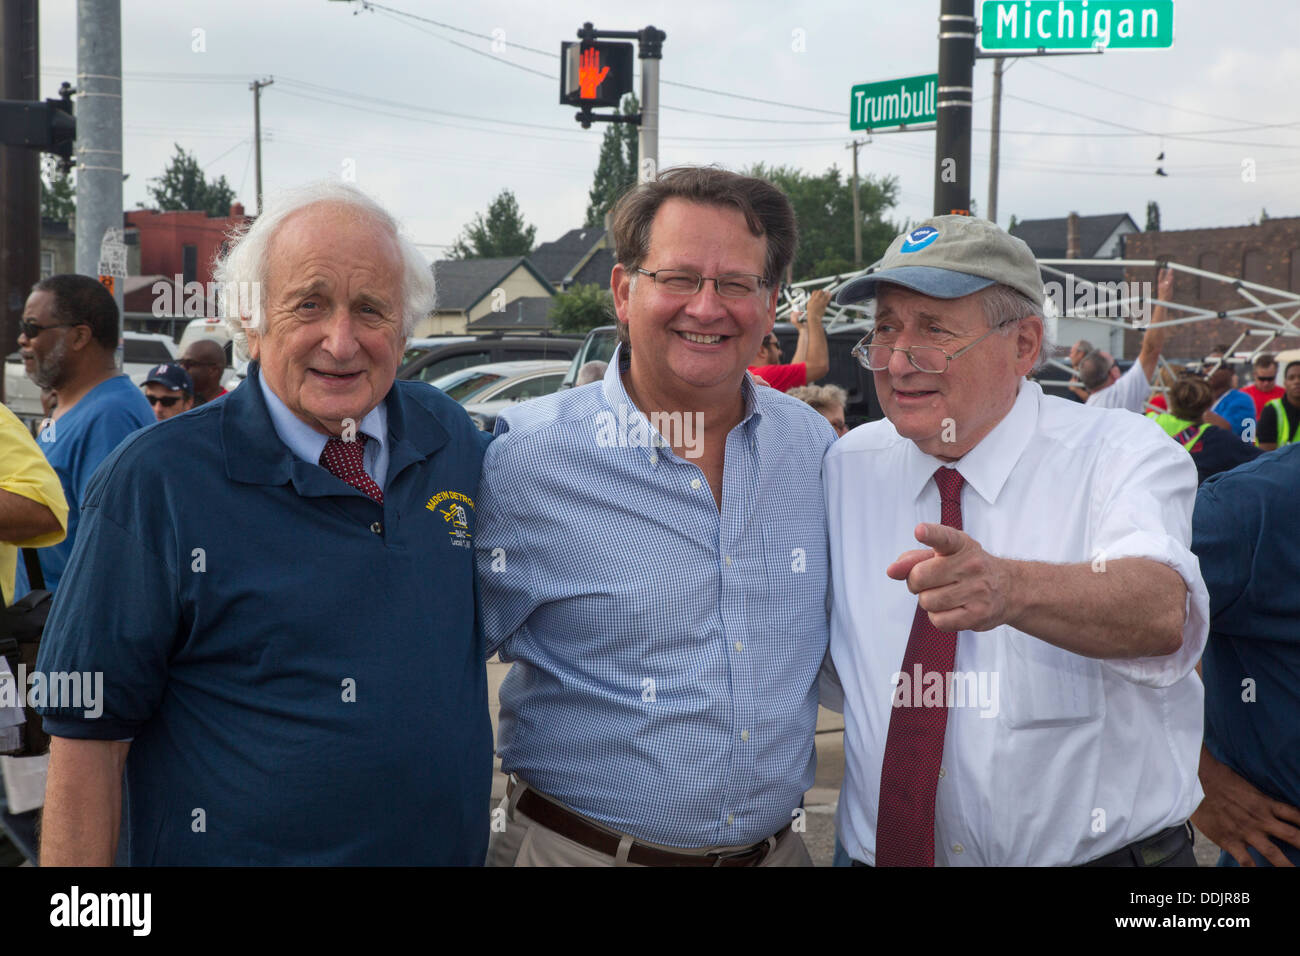 Politicians at Detroit's Labor Day parade. From left: Congressman Sander Levin; Congressman Gary Peters; Senator Carl Levin. - Stock Image